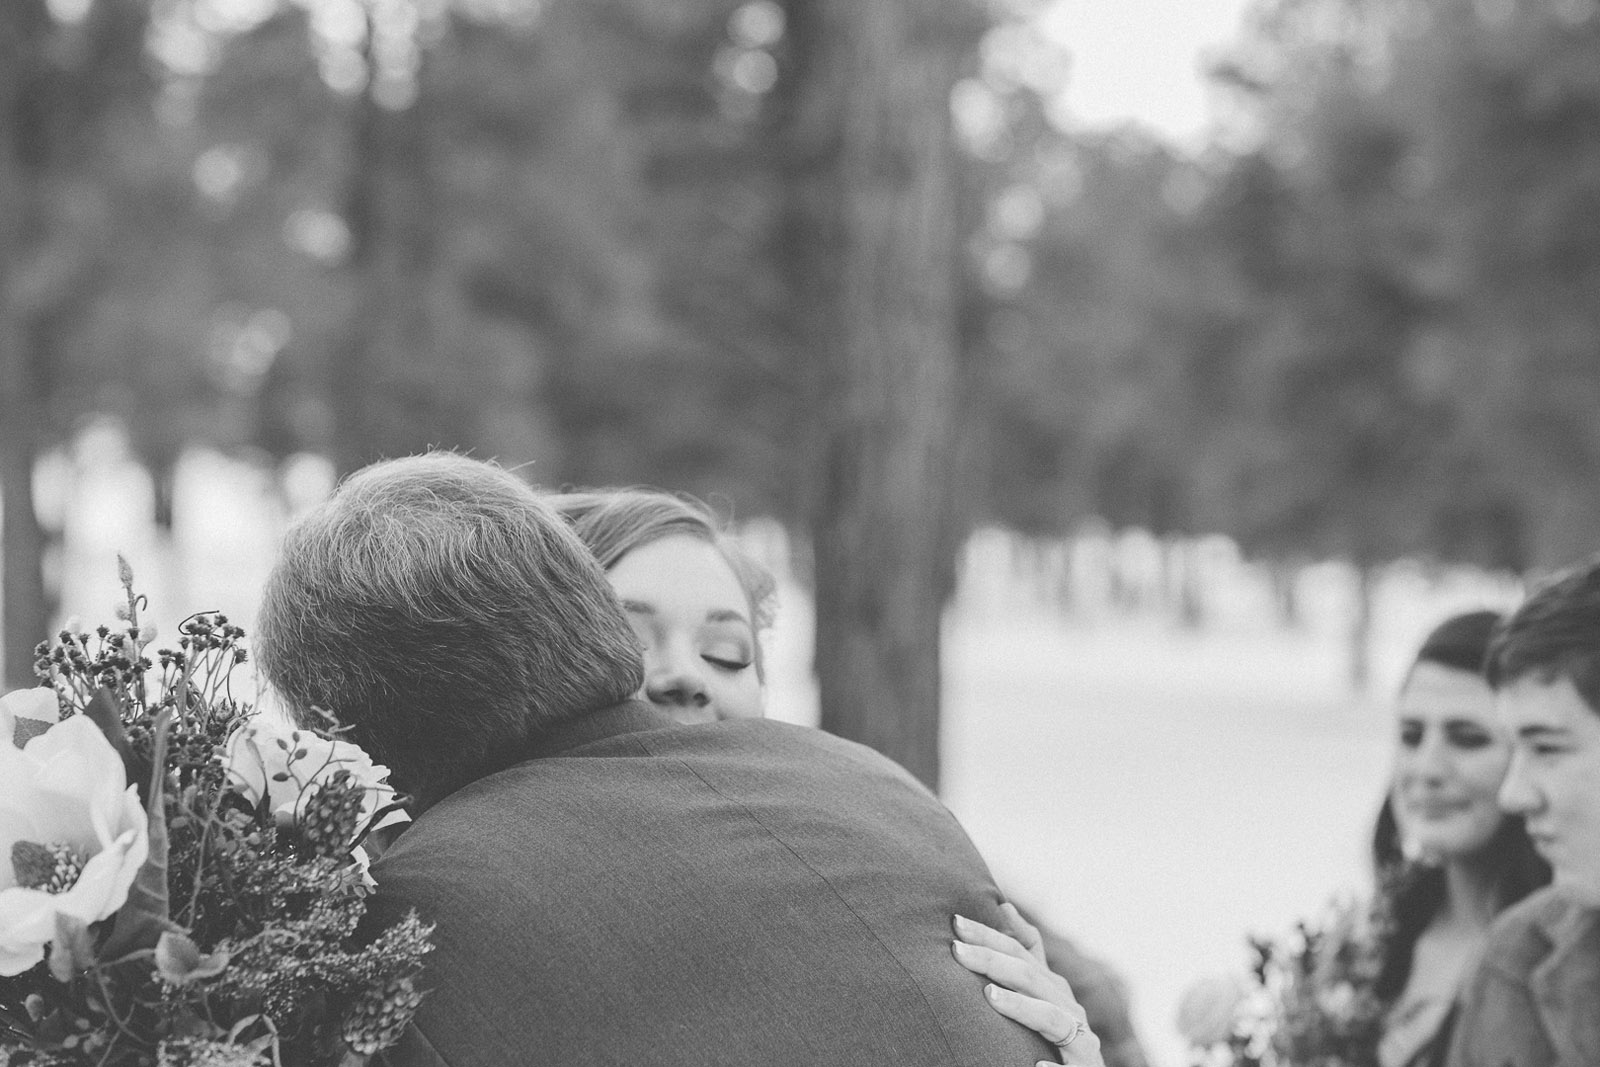 131-wedding-ceremony-in-pagosa-springs-wedding-photographer-snow-winter-wedding